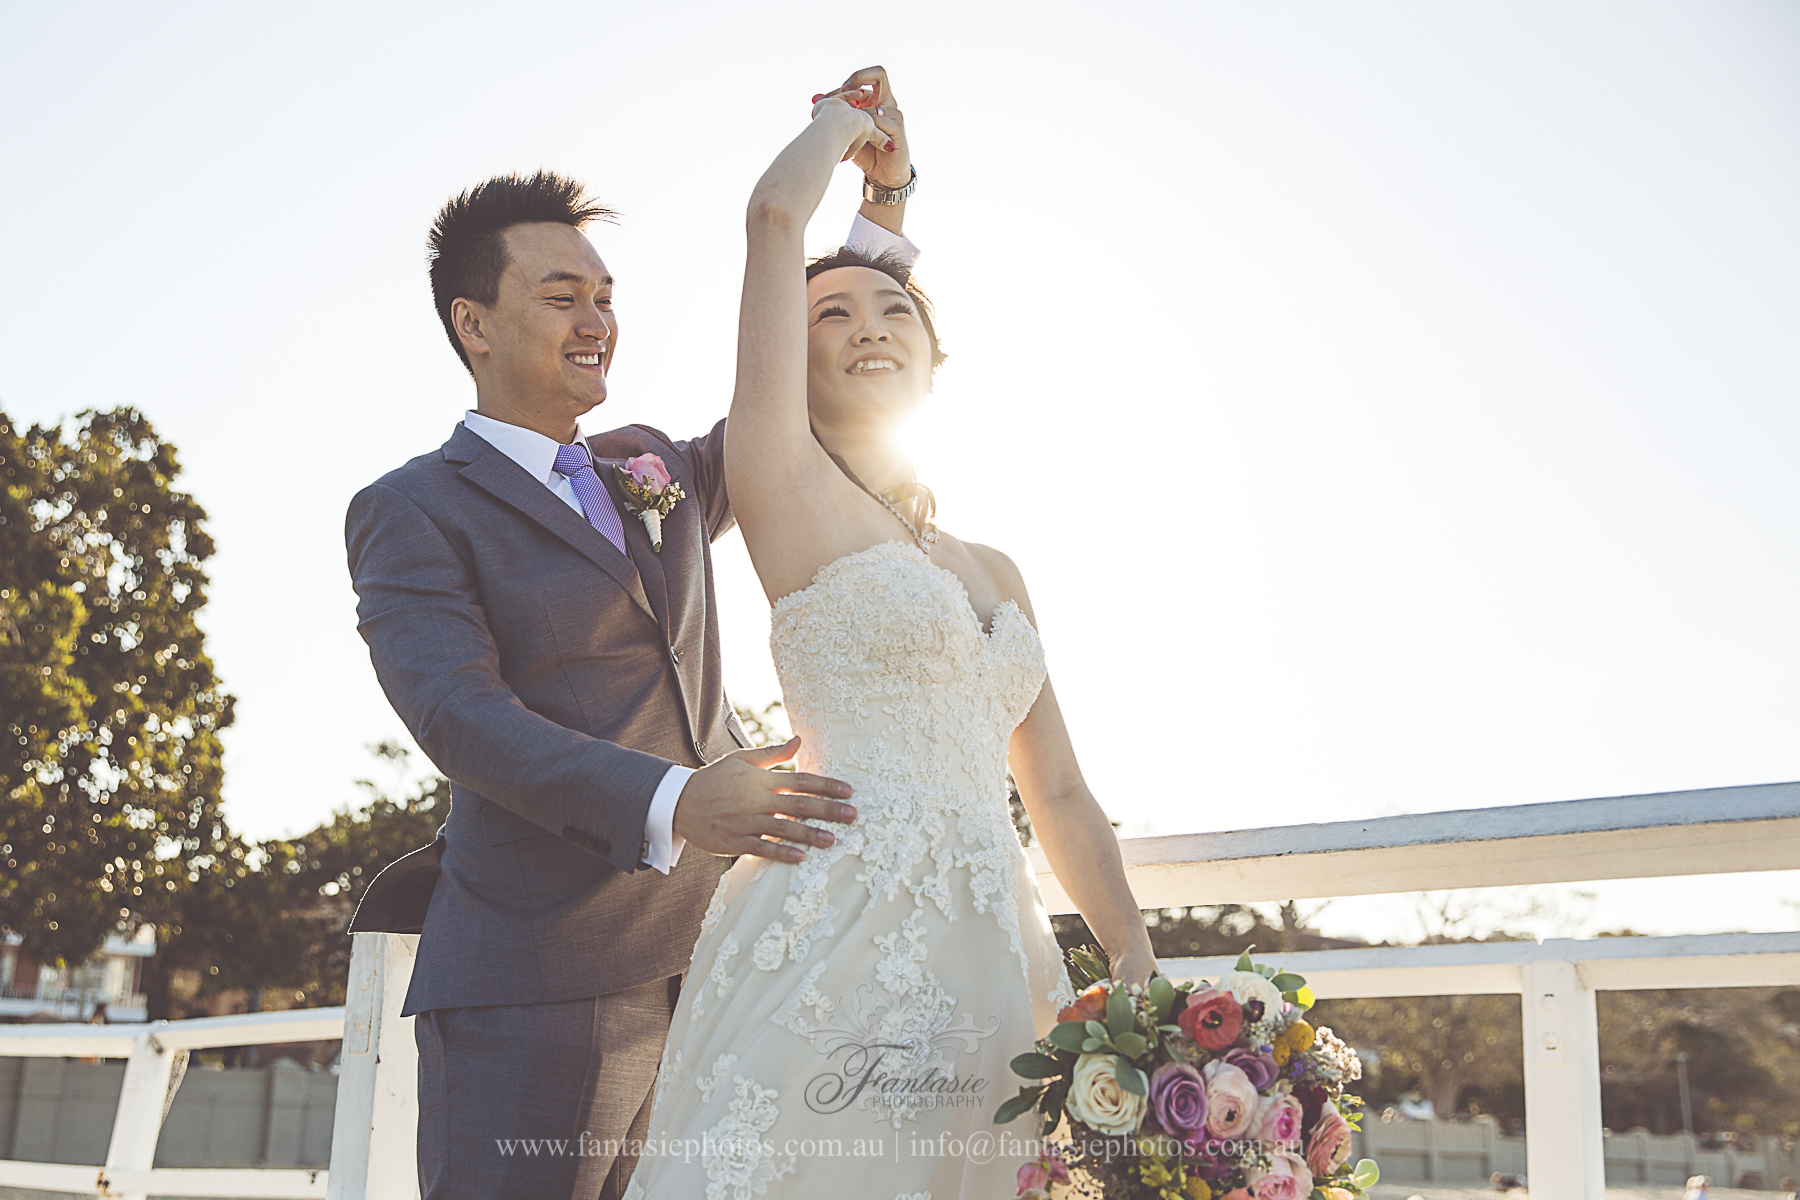 Wedding Photography Balmoral beach Mosman | Fantasie Photography